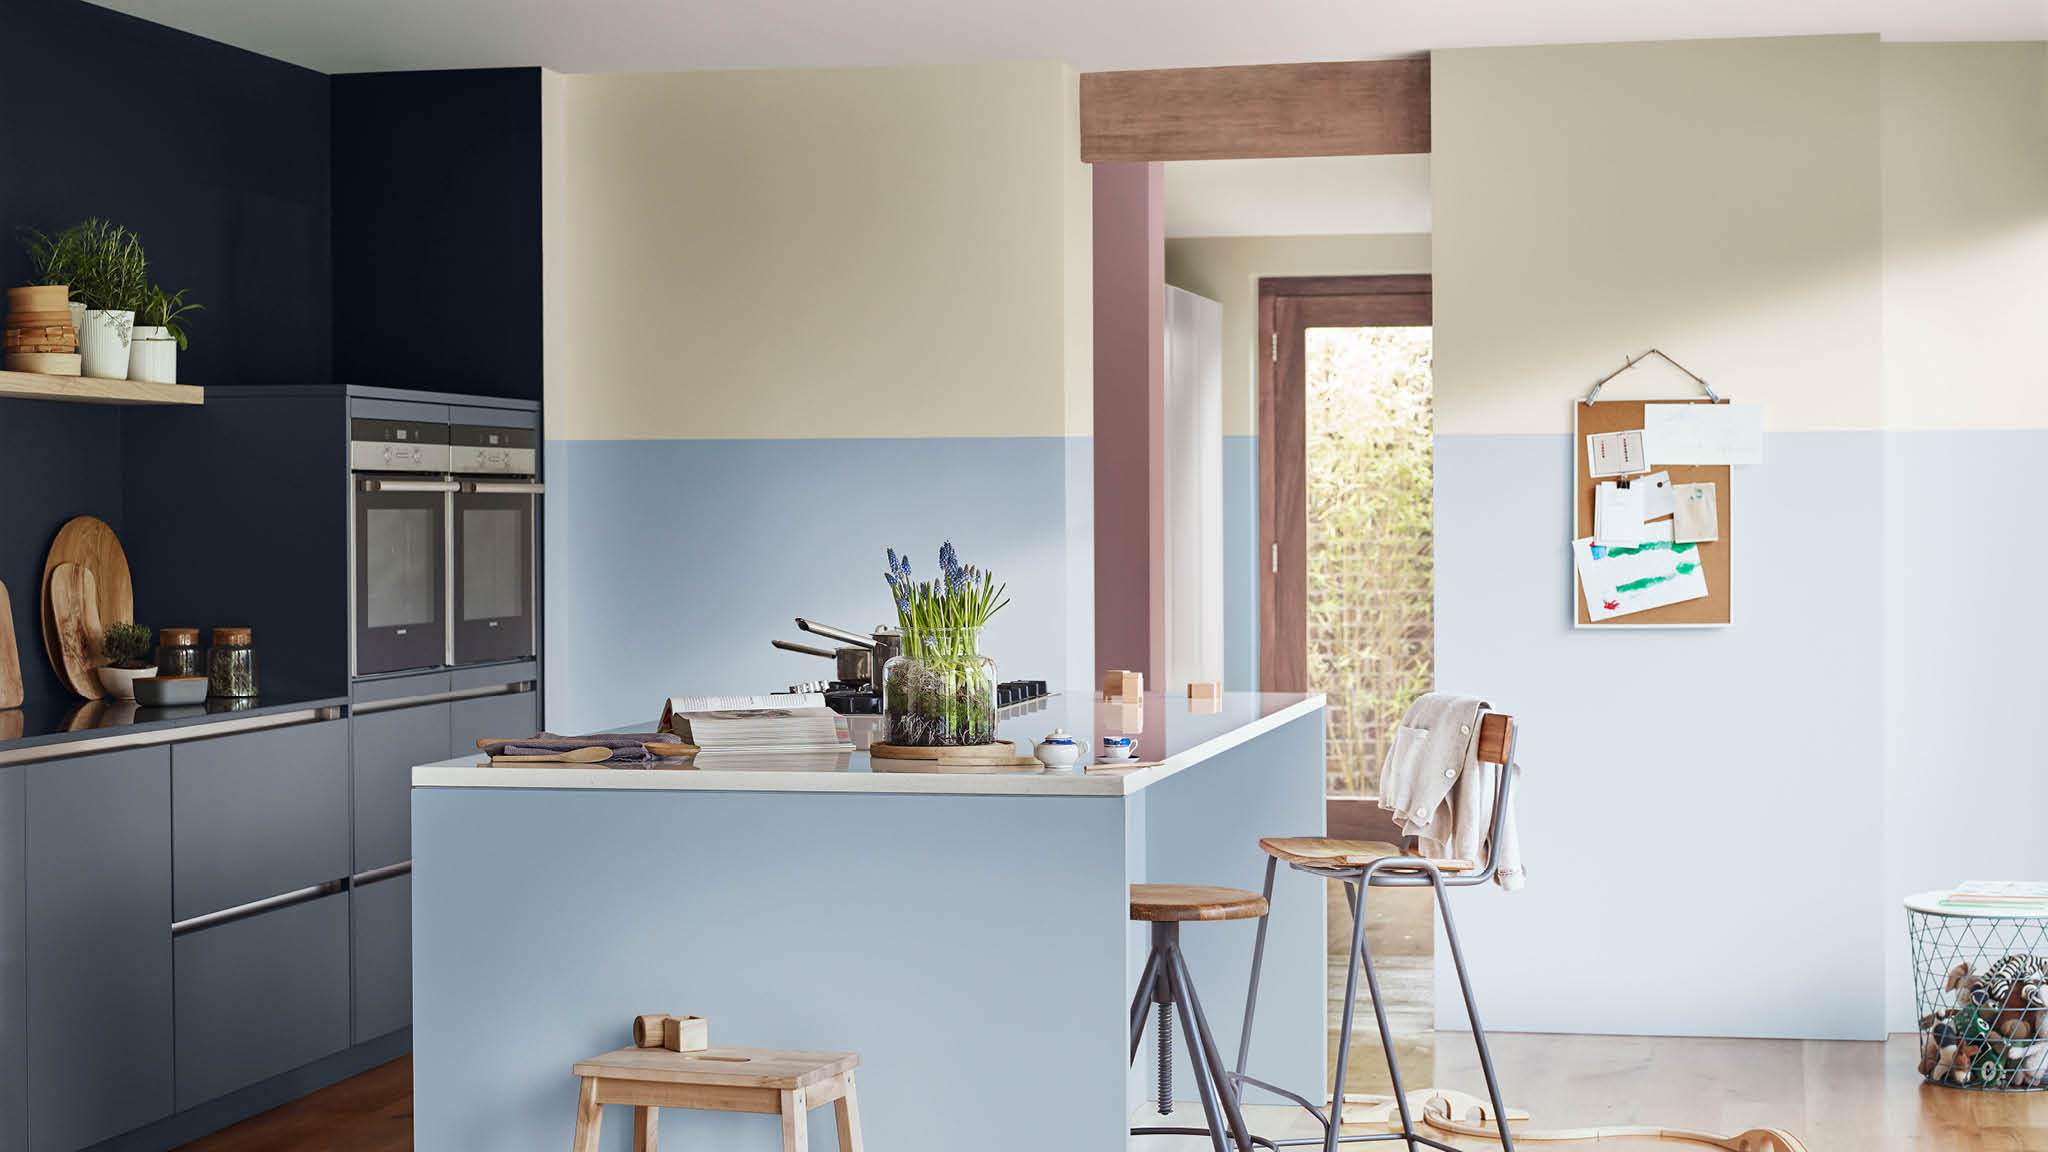 Cool blues and neutrals create calm